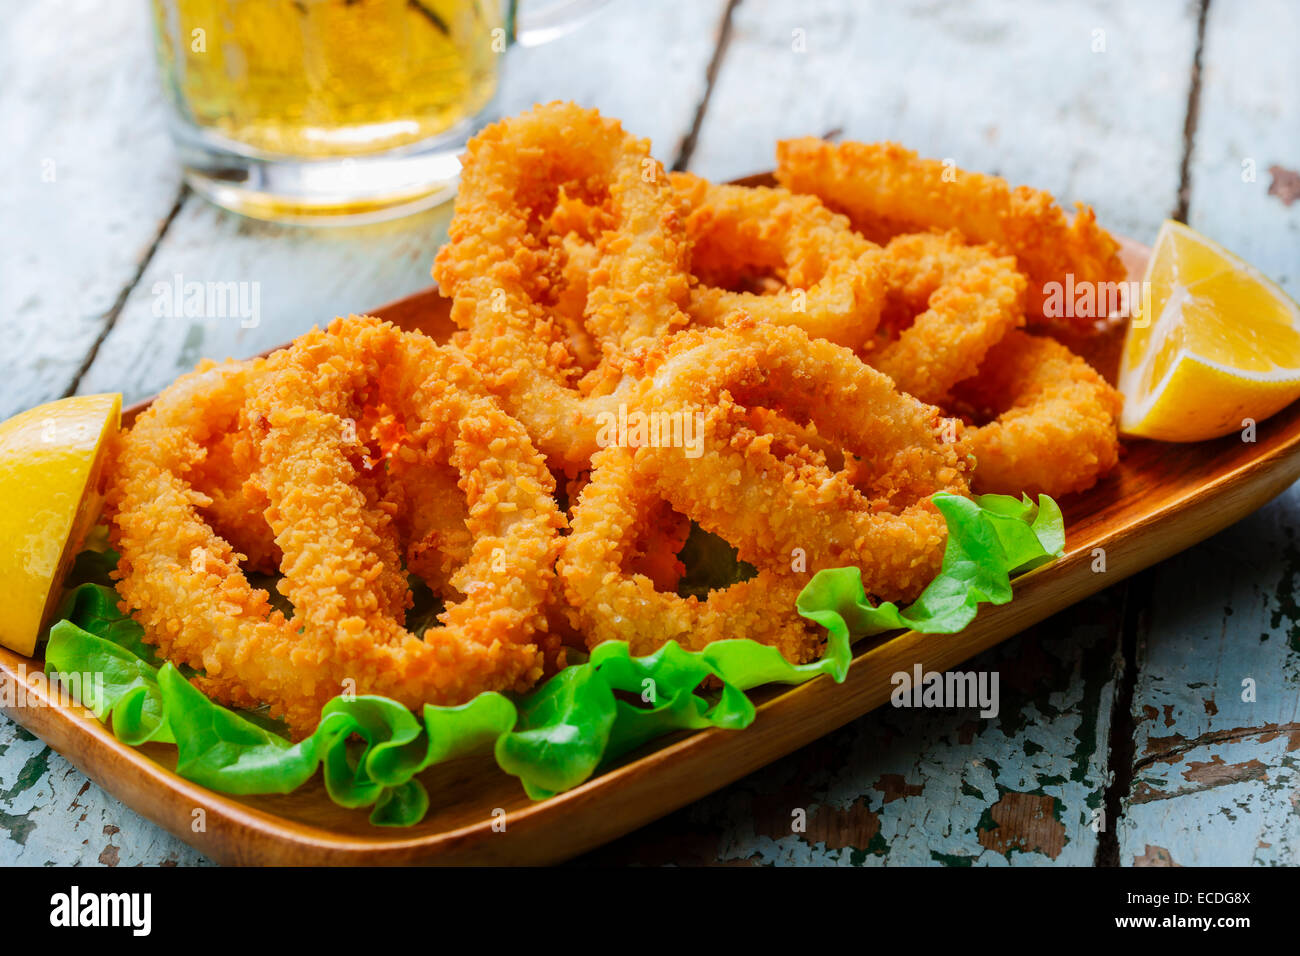 fried squid rings breaded with lemon - Stock Image